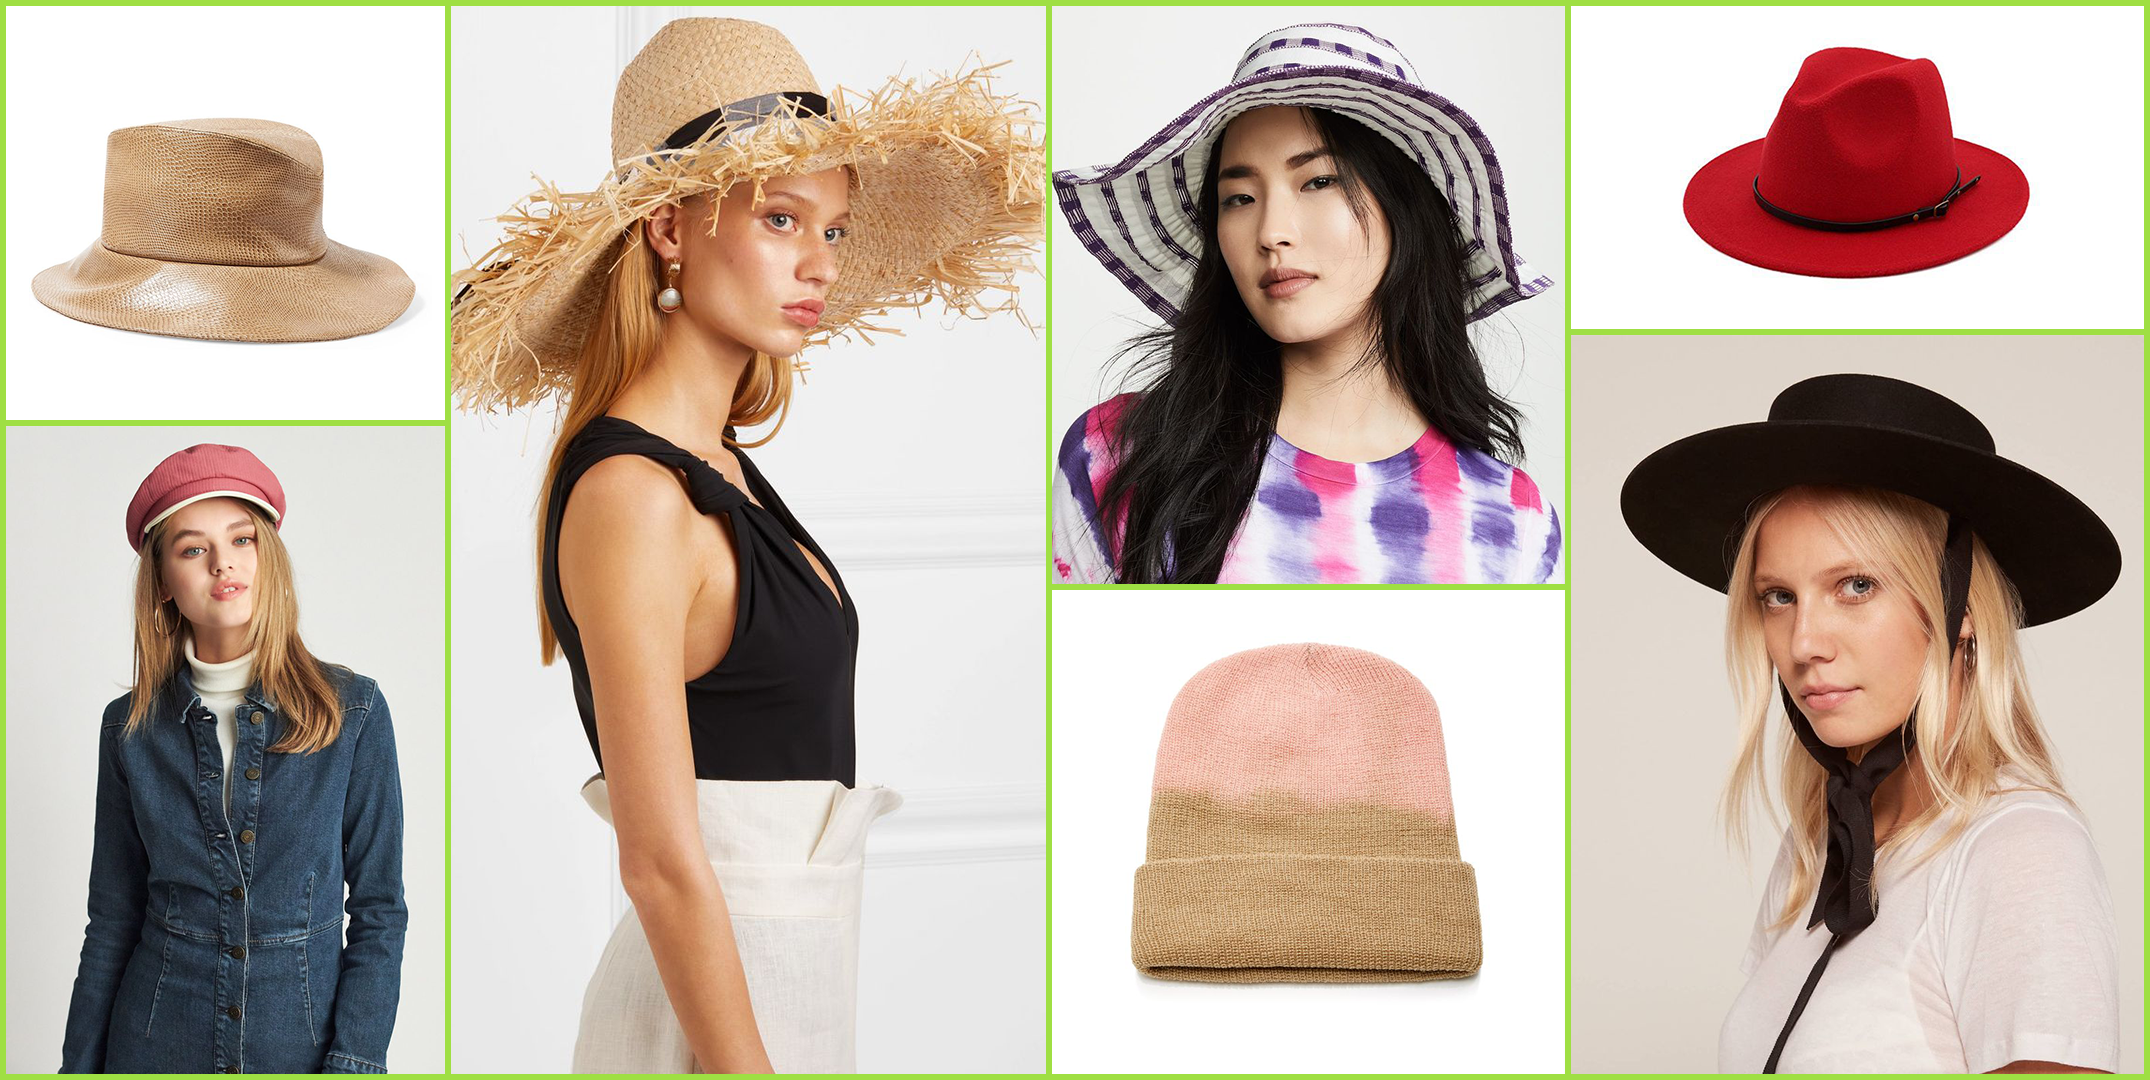 20 Chic Hat Brands You'll Want to Wear on Your Head This Season